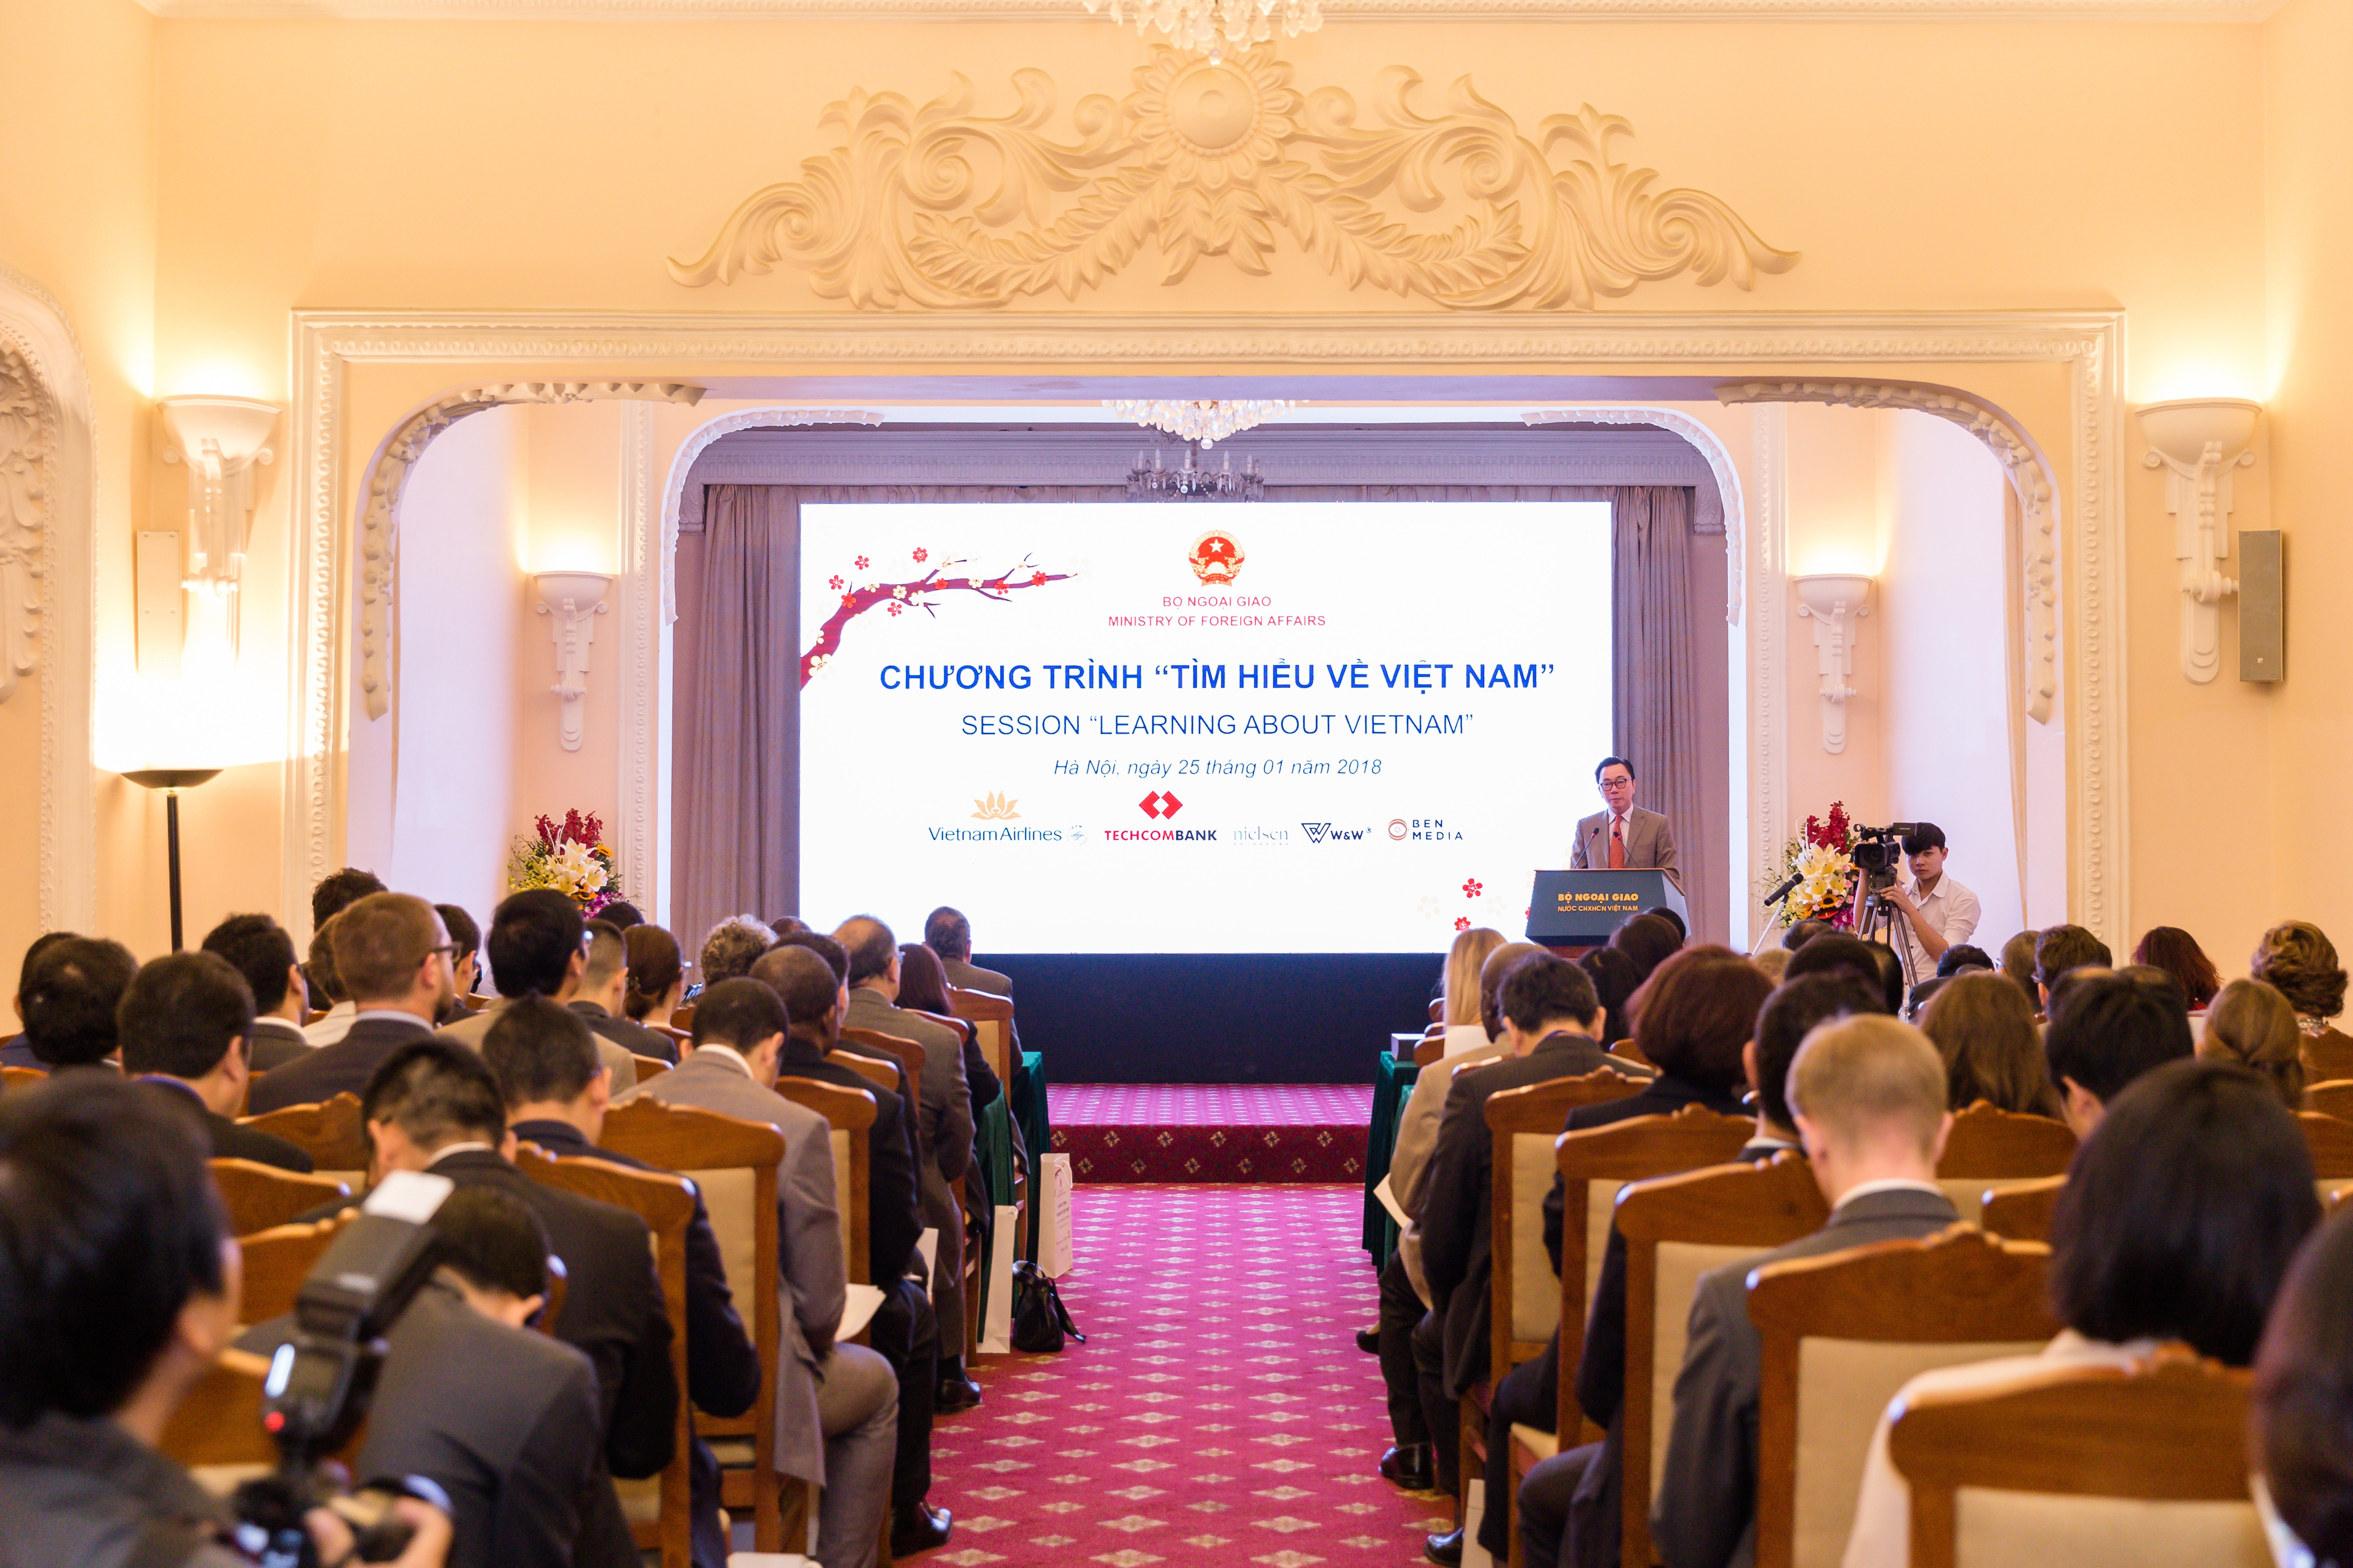 Providing information about Vietnam to foreign diplomats